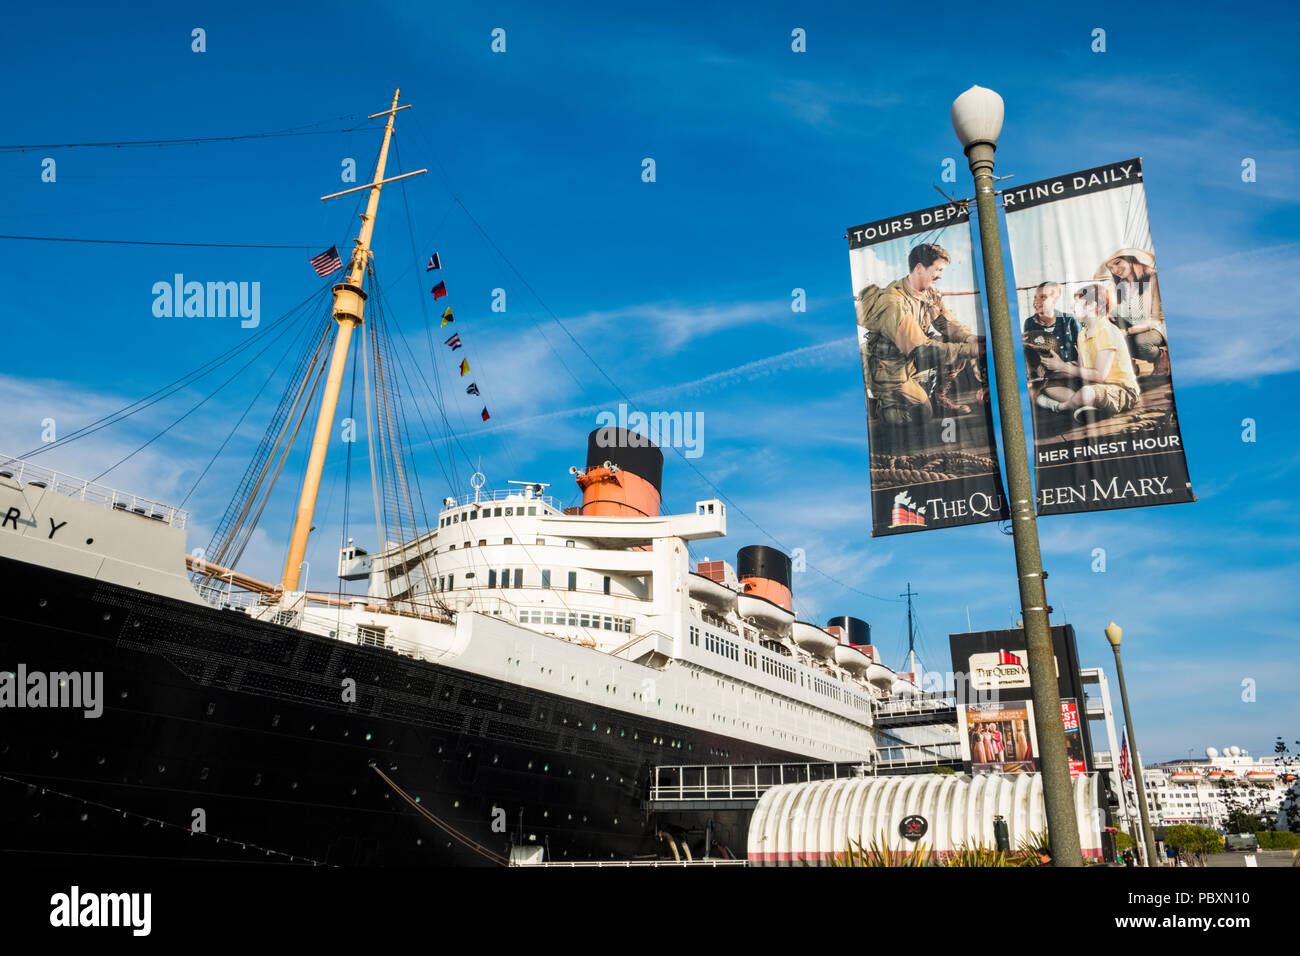 The Queen Mary ocean liner, now a museum and major tourist attraction in Long Beach, California, CA, USA - Stock Image